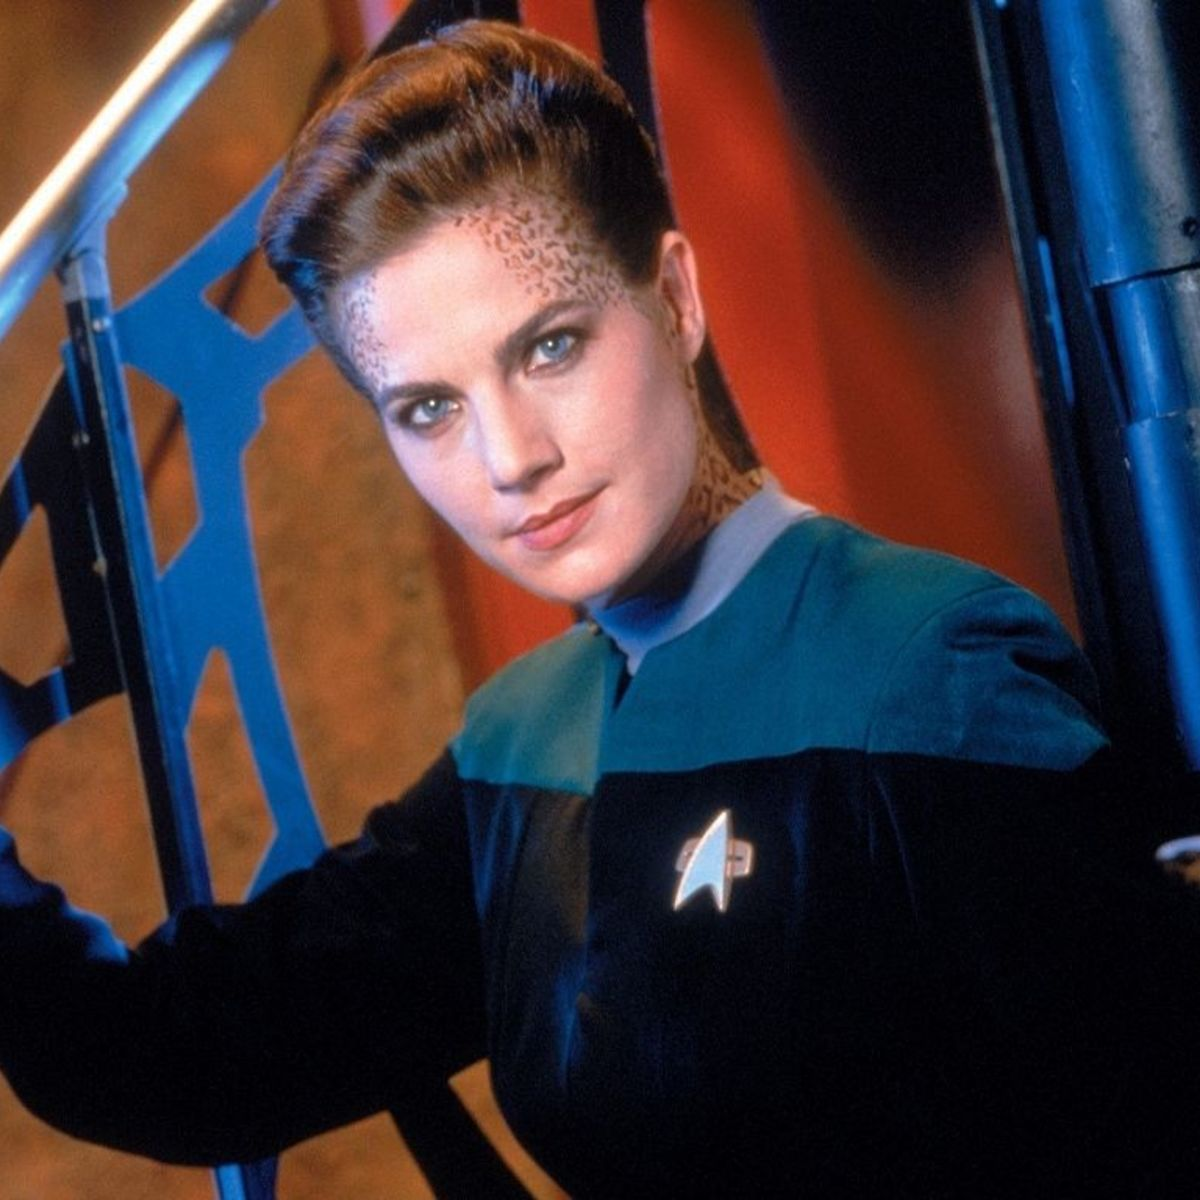 Jadzia Dax S Death On Deep Space Nine Was A Wtf Moment For The Ages